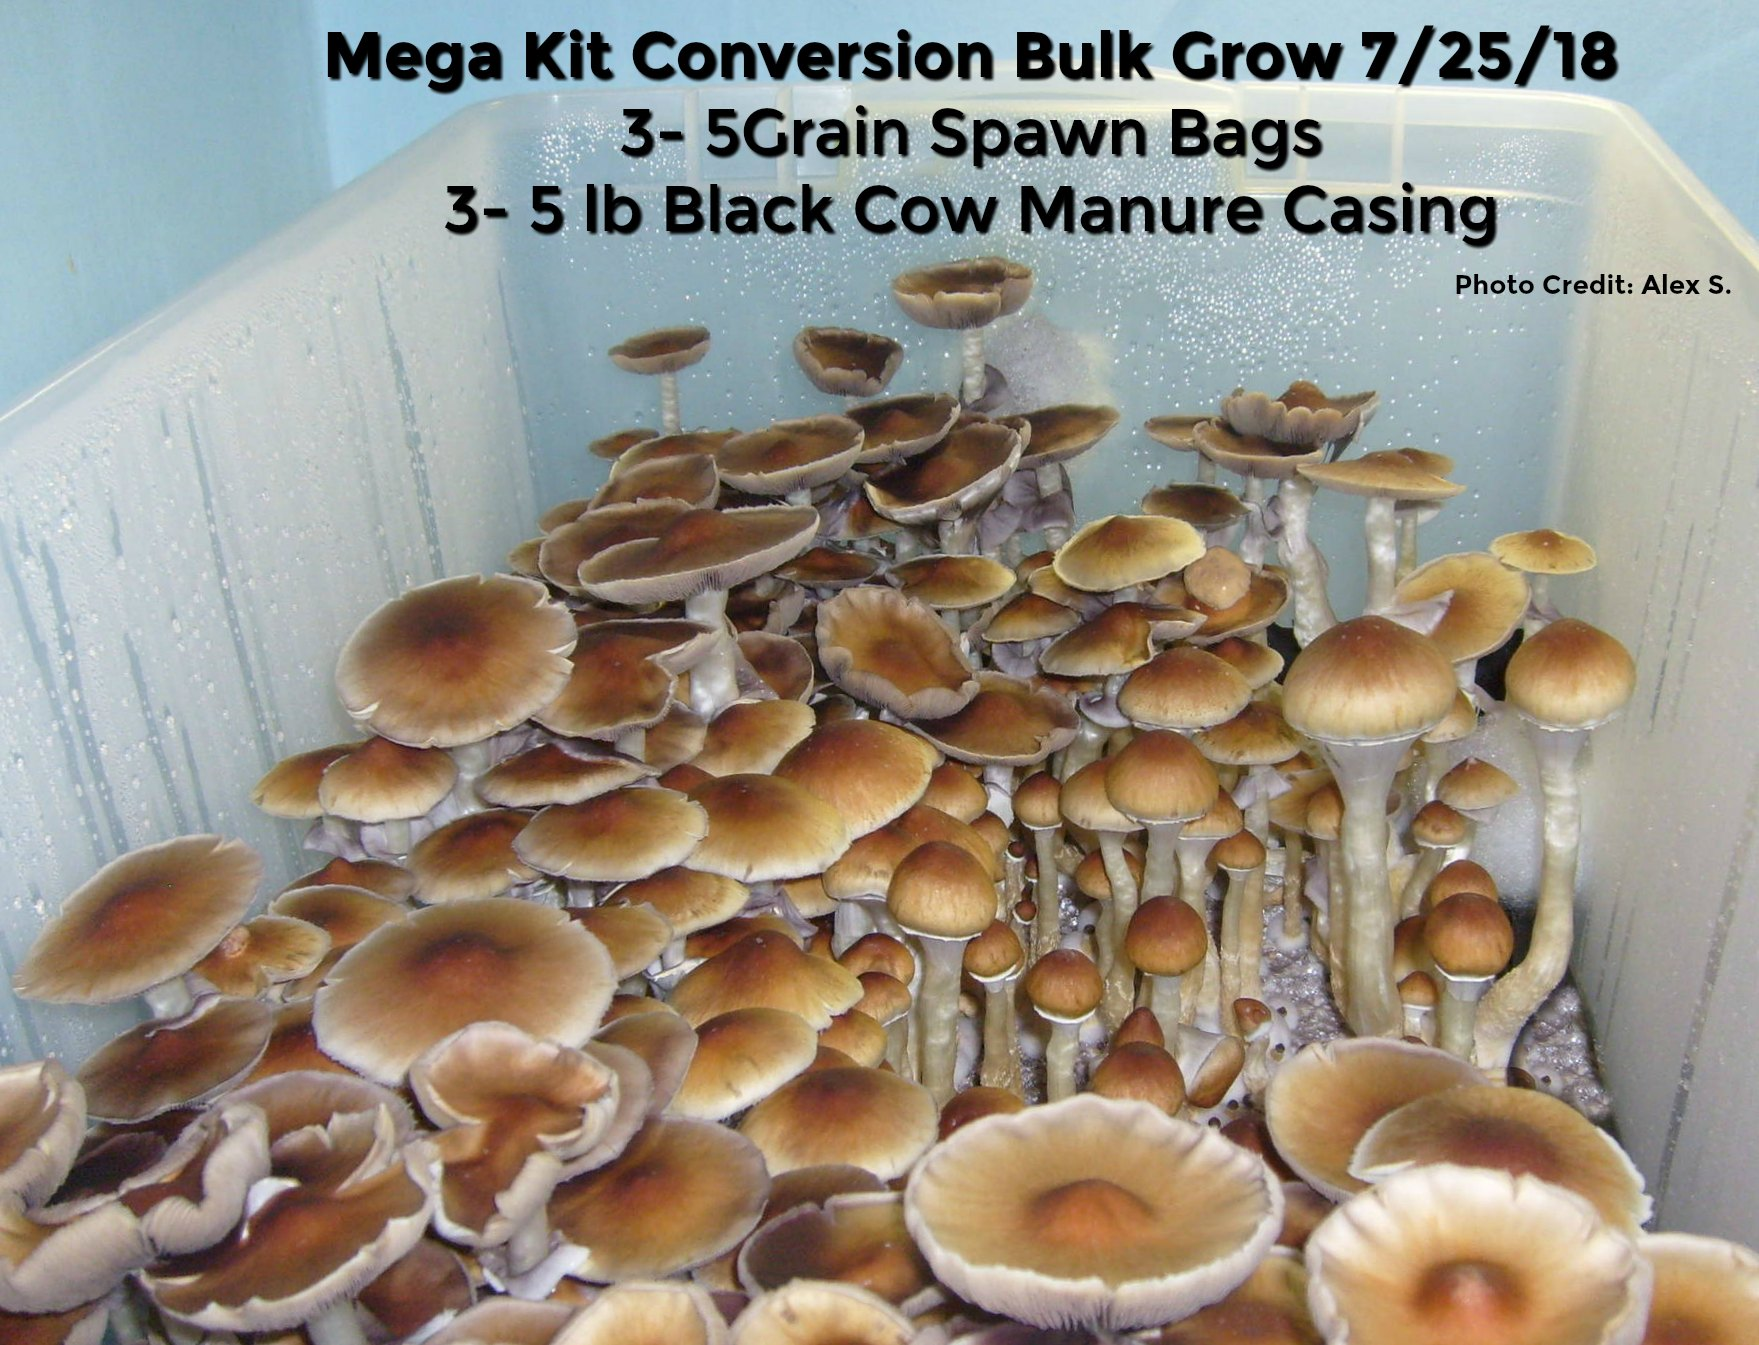 Bovine Manure Casing Mix Is The Best Producing Casing Mix